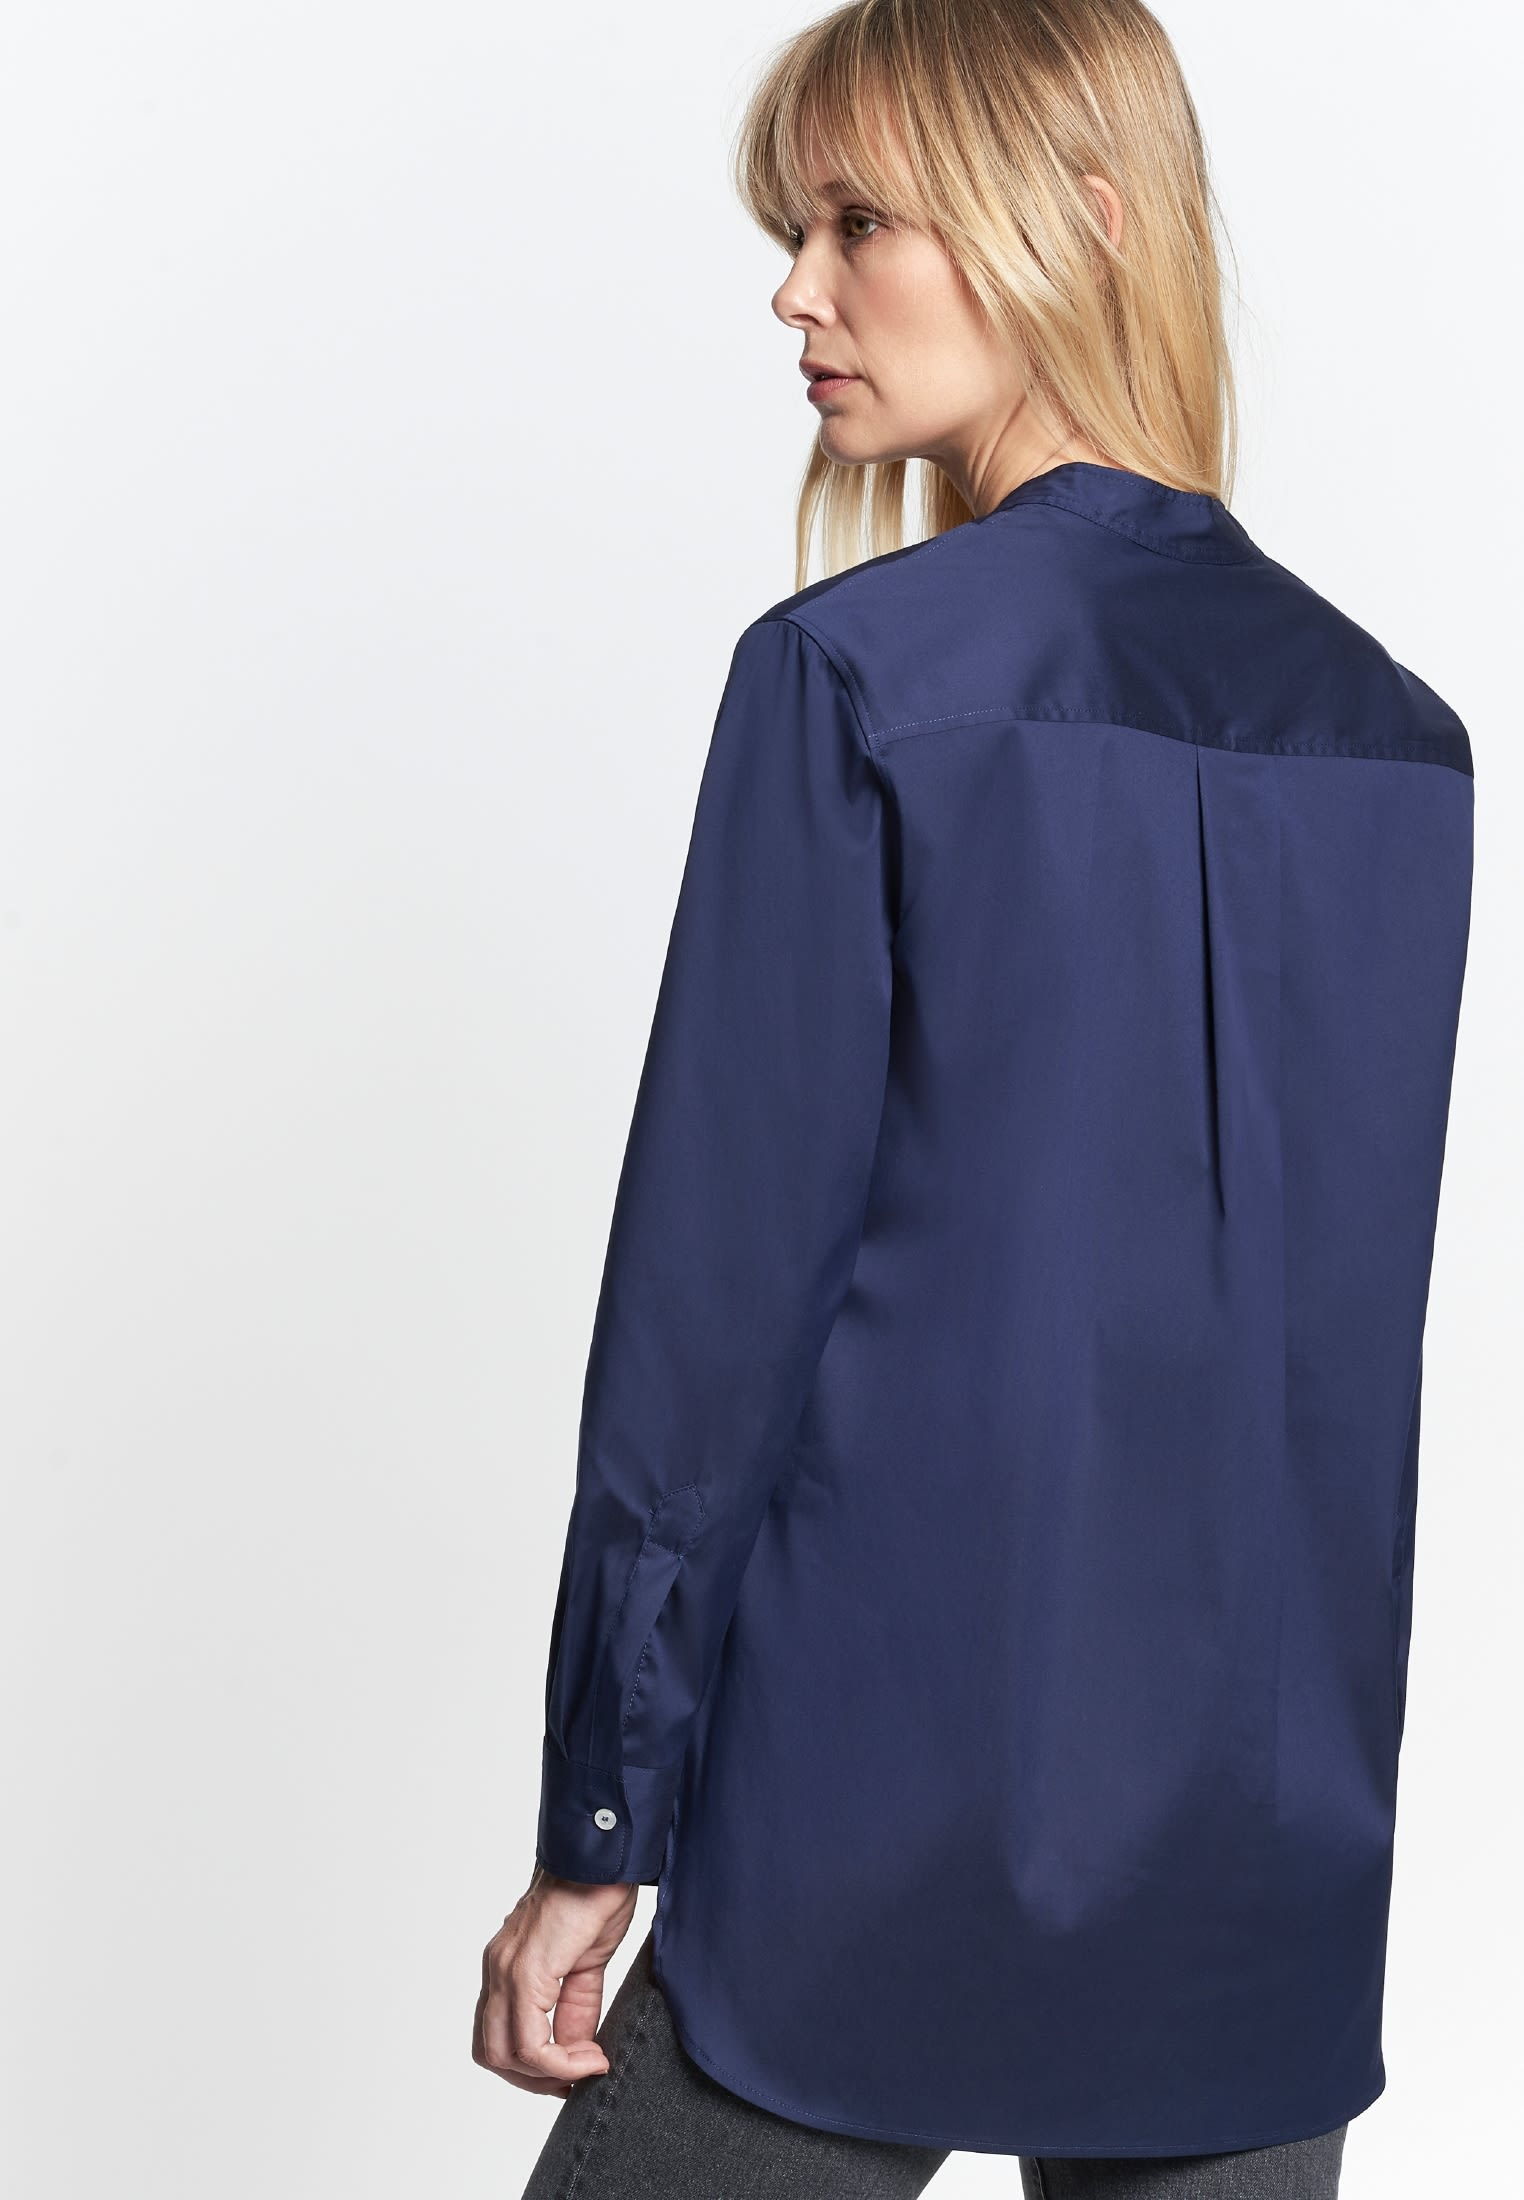 Poplin Slip Over Blouse made of cotton blend in Dark blue |  Seidensticker Onlineshop